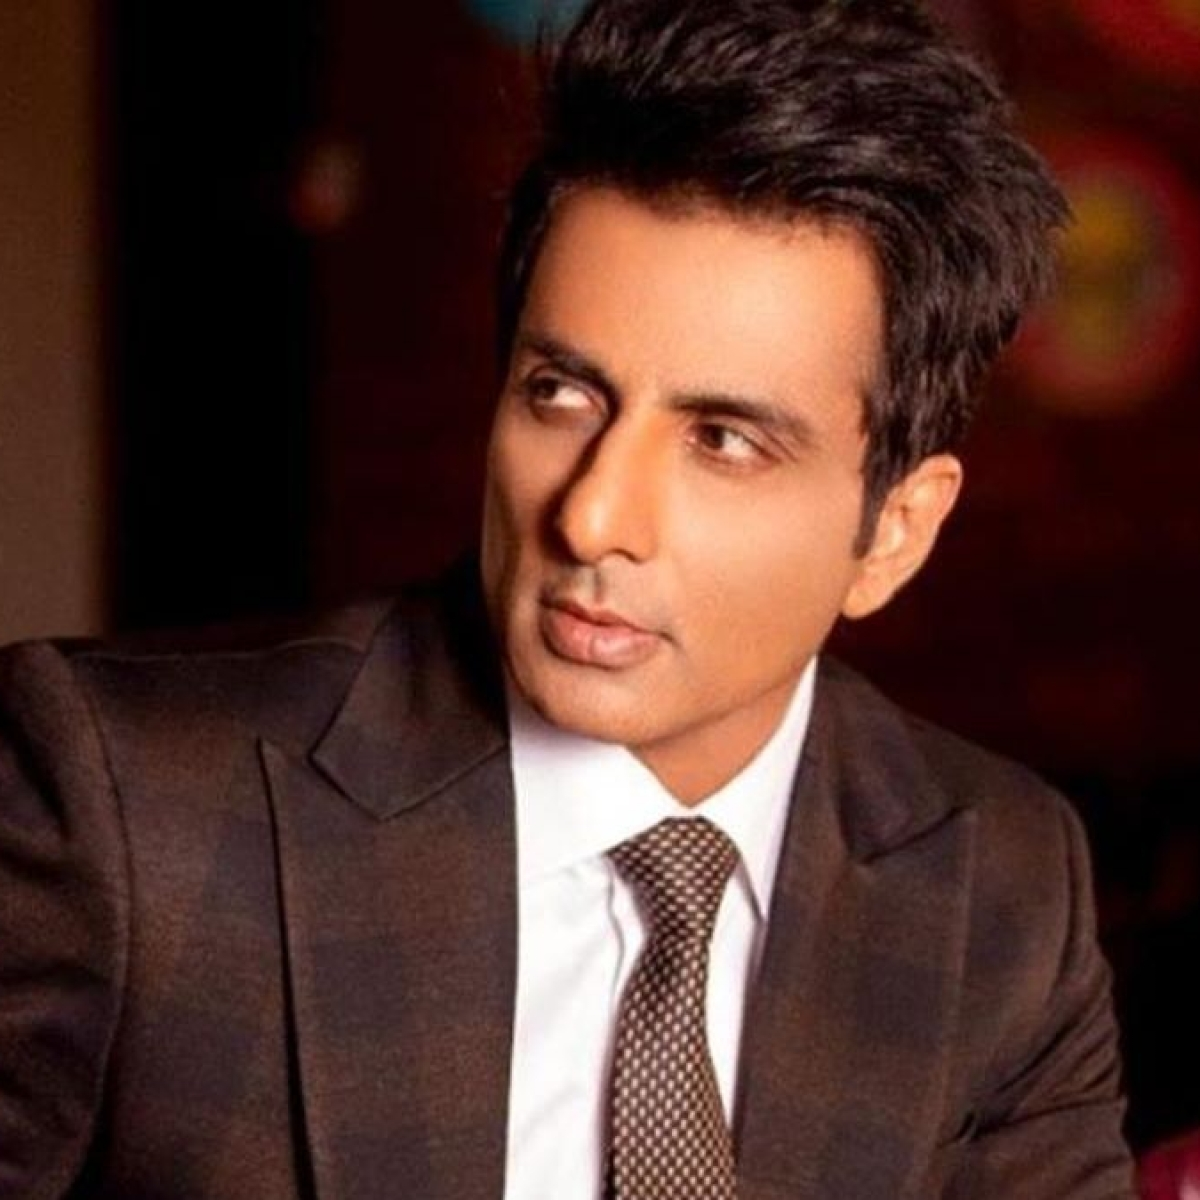 'I'd be broken...': Sonu Sood says he's glad his parents are not alive to see the COVID-19 pandemic